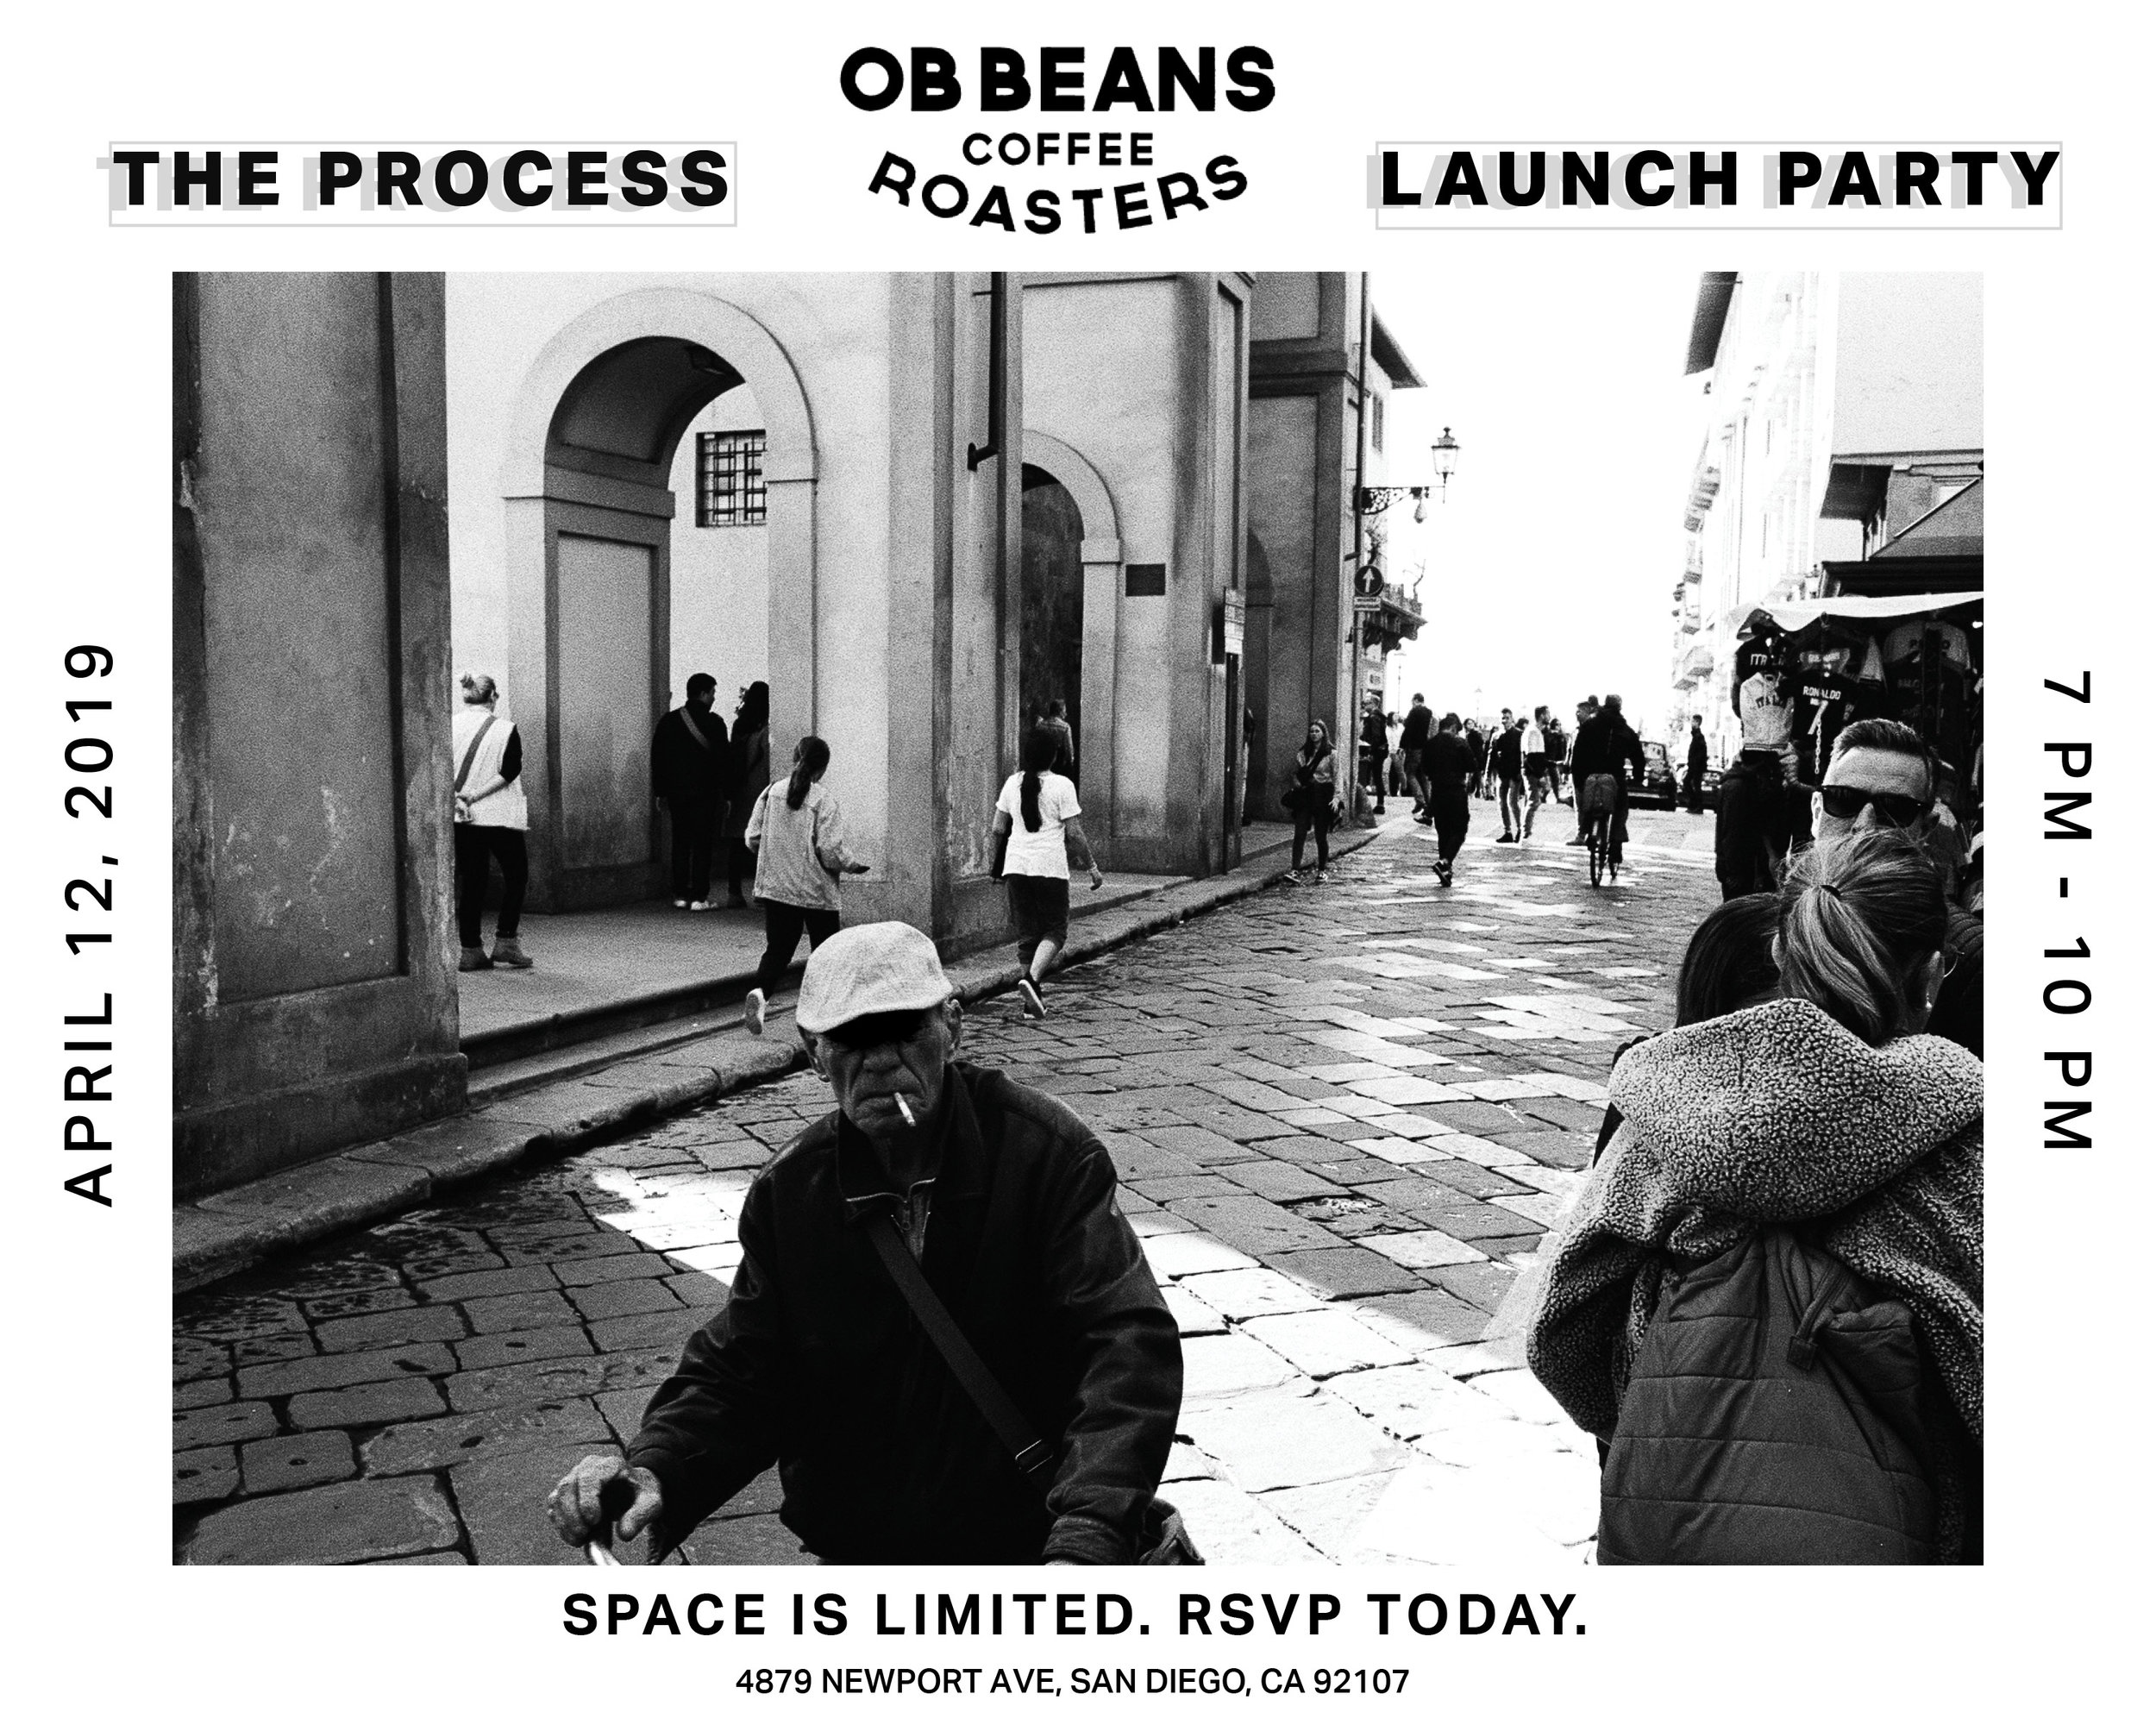 we did it! - After about two years of daily work to create my first body of work, The Process, came off the press in January of 2019. It proceeded to sell out within the first 2 weeks following its release. Then on April 12th, at OB Beans in Ocean Beach, Ca, upwards of 100 people turned out to celebrate the creation of this book.